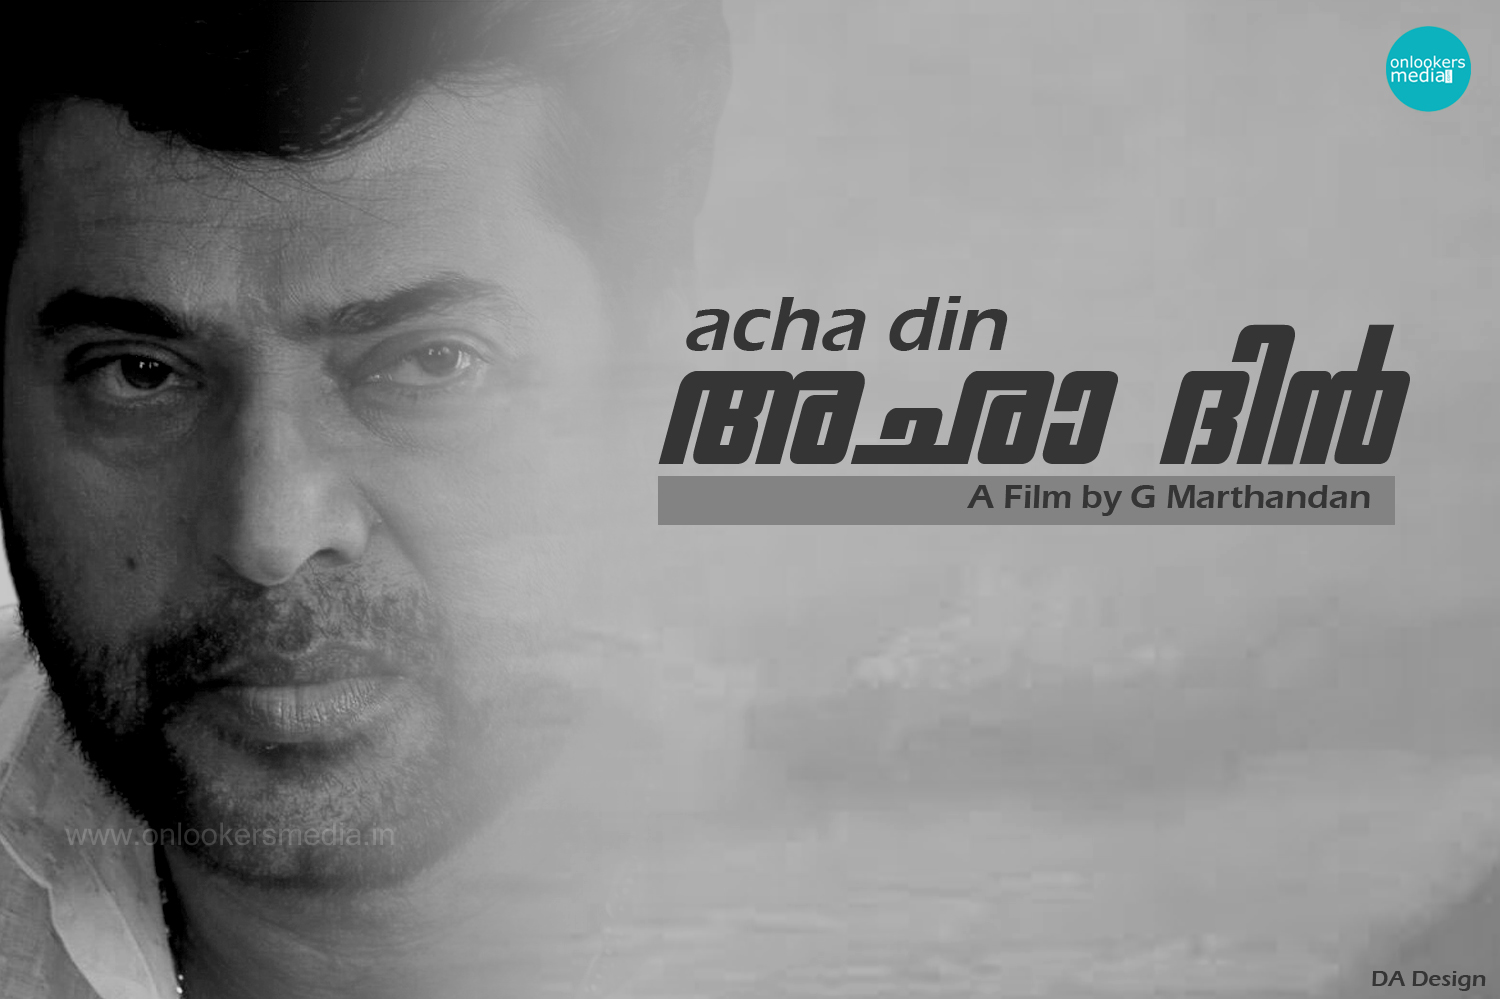 Mammootty in Acha Din Malayalam Movie-Stills-Images-Photos-Gallery-Videos-MP3-Onlookers Media